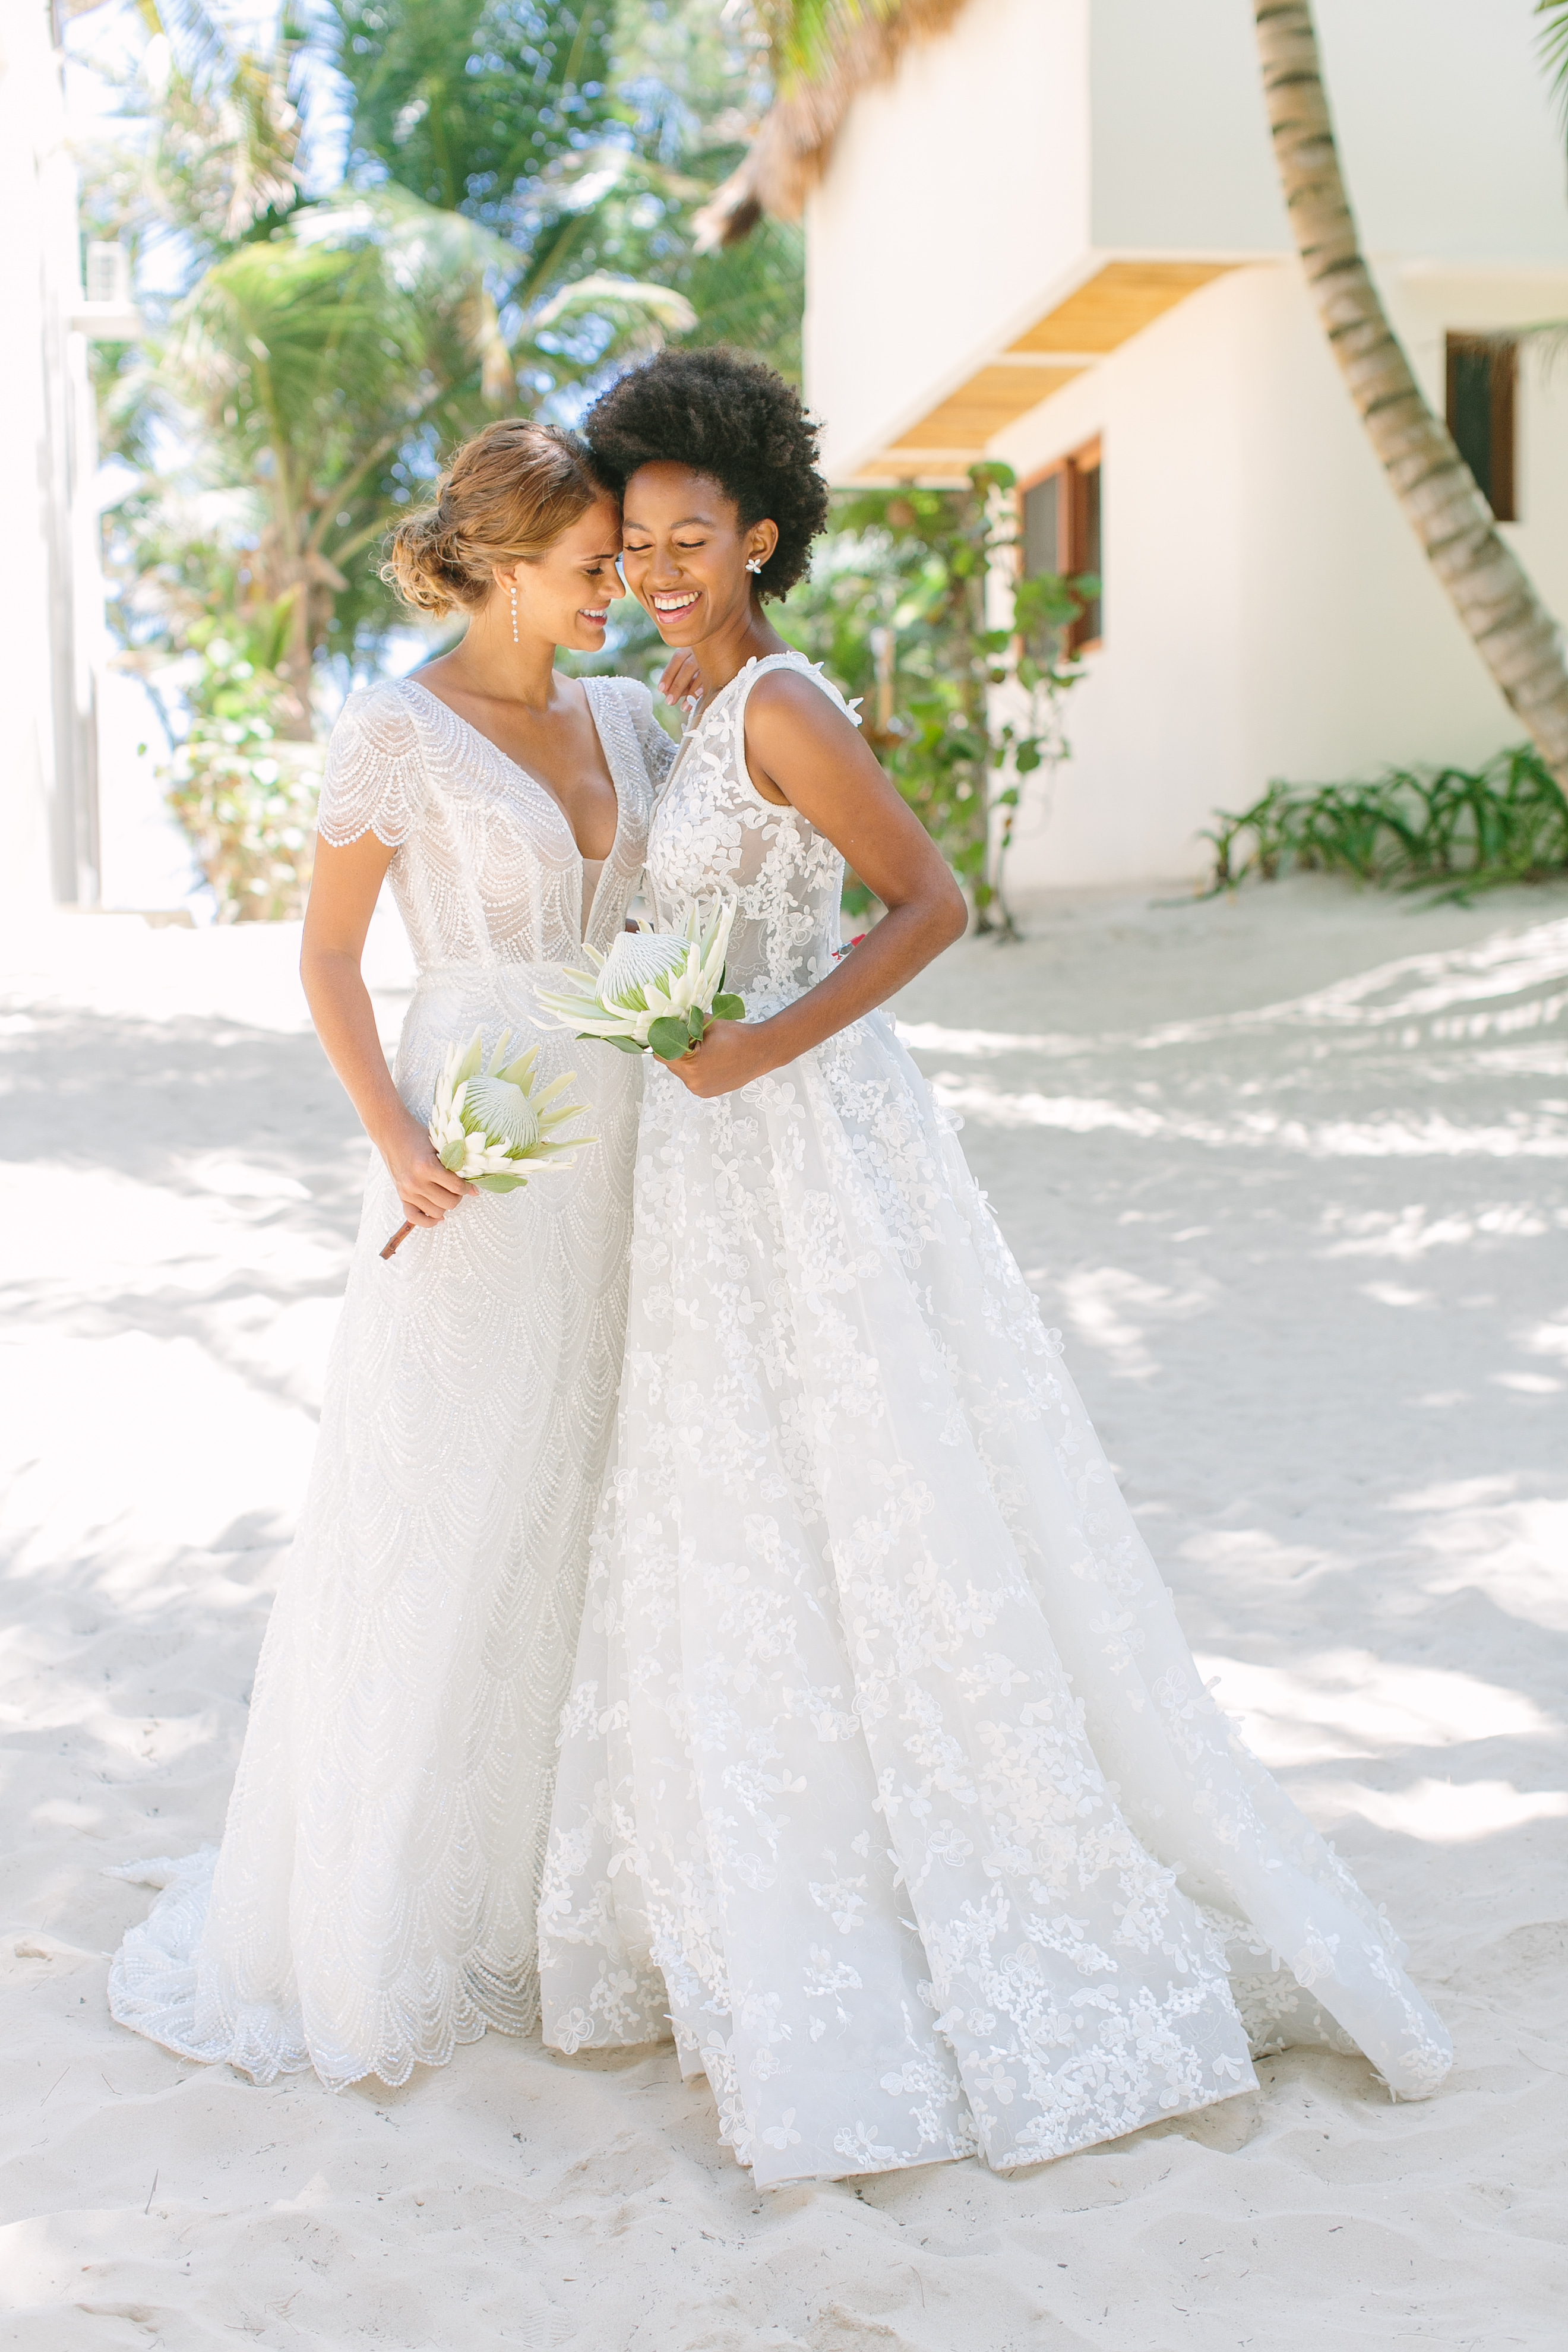 Tulum Weddings Are Unbelievably Romantic—Here's Proof: We took Kleinfeld Bridal wedding dresses and Kleinfeld Bridal Party bridesmaids dresses to Tulum, Mexico for a fun photoshoot on the beach full of flowers, sun, sand and fun!Tulum Weddings Are Unbelievably Romantic—Here's Proof: We took Kleinfeld Bridal wedding dresses and Kleinfeld Bridal Party bridesmaids dresses to Tulum, Mexico for a fun photoshoot on the beach full of flowers, sun, sand and fun!